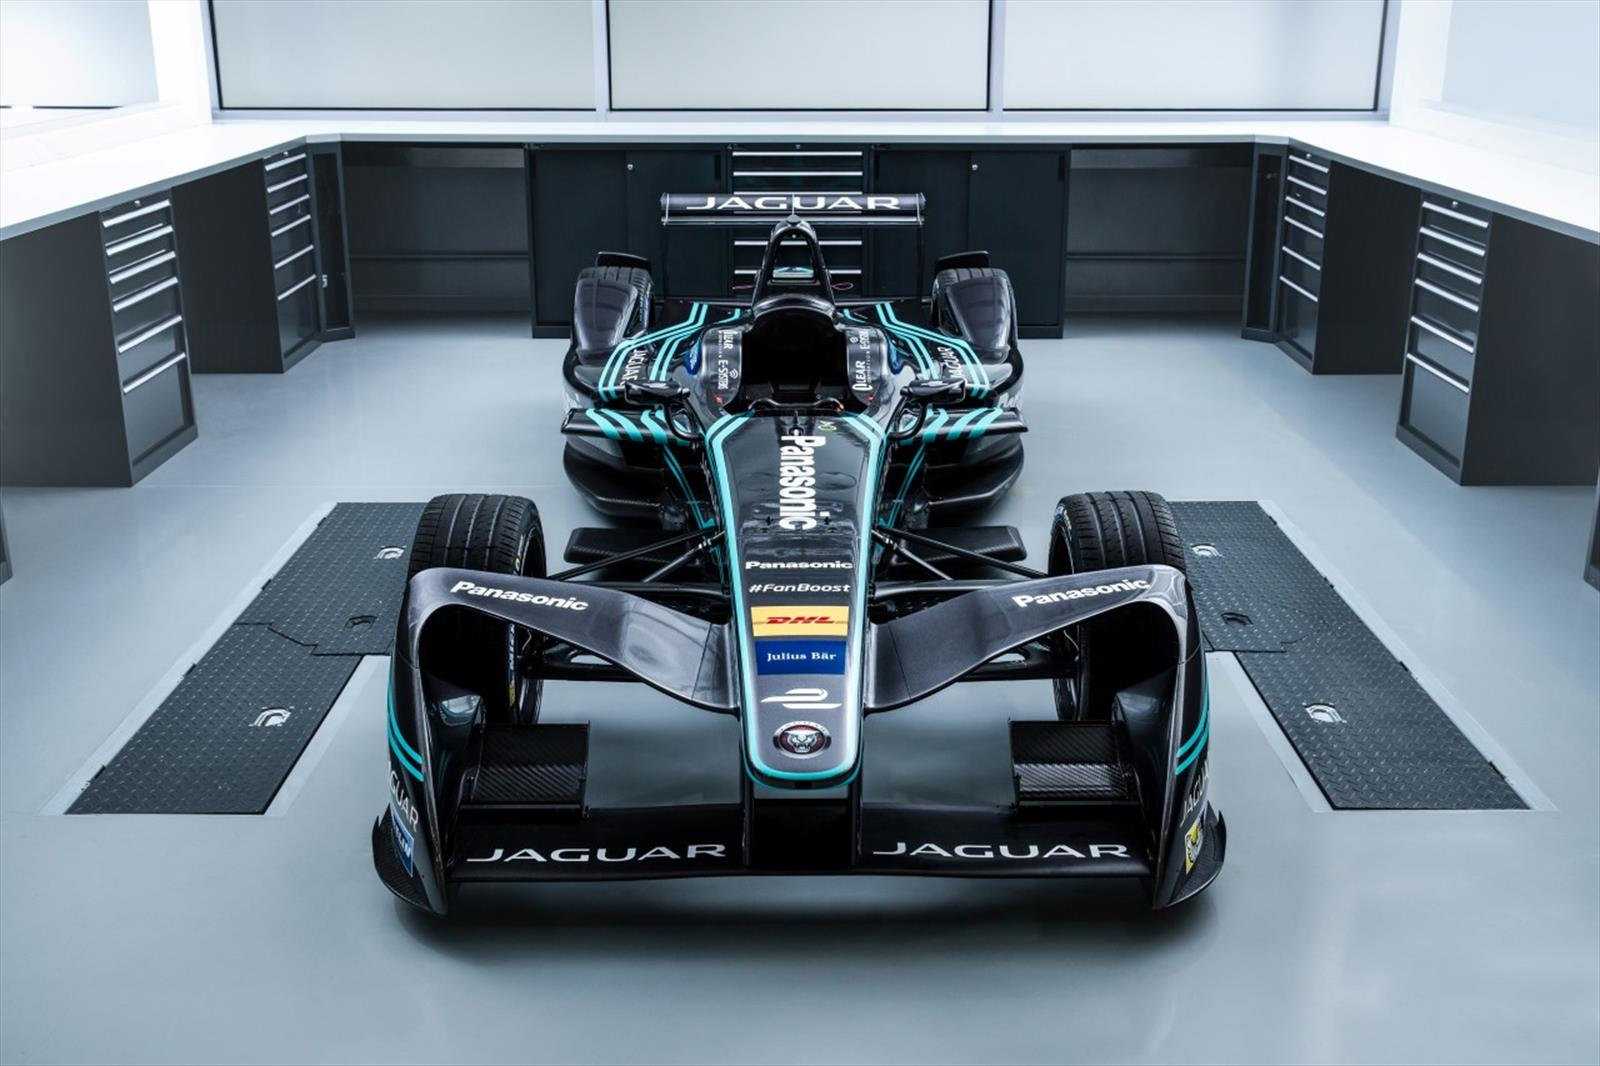 panasonic jaguar racing 2017 formula e. Black Bedroom Furniture Sets. Home Design Ideas